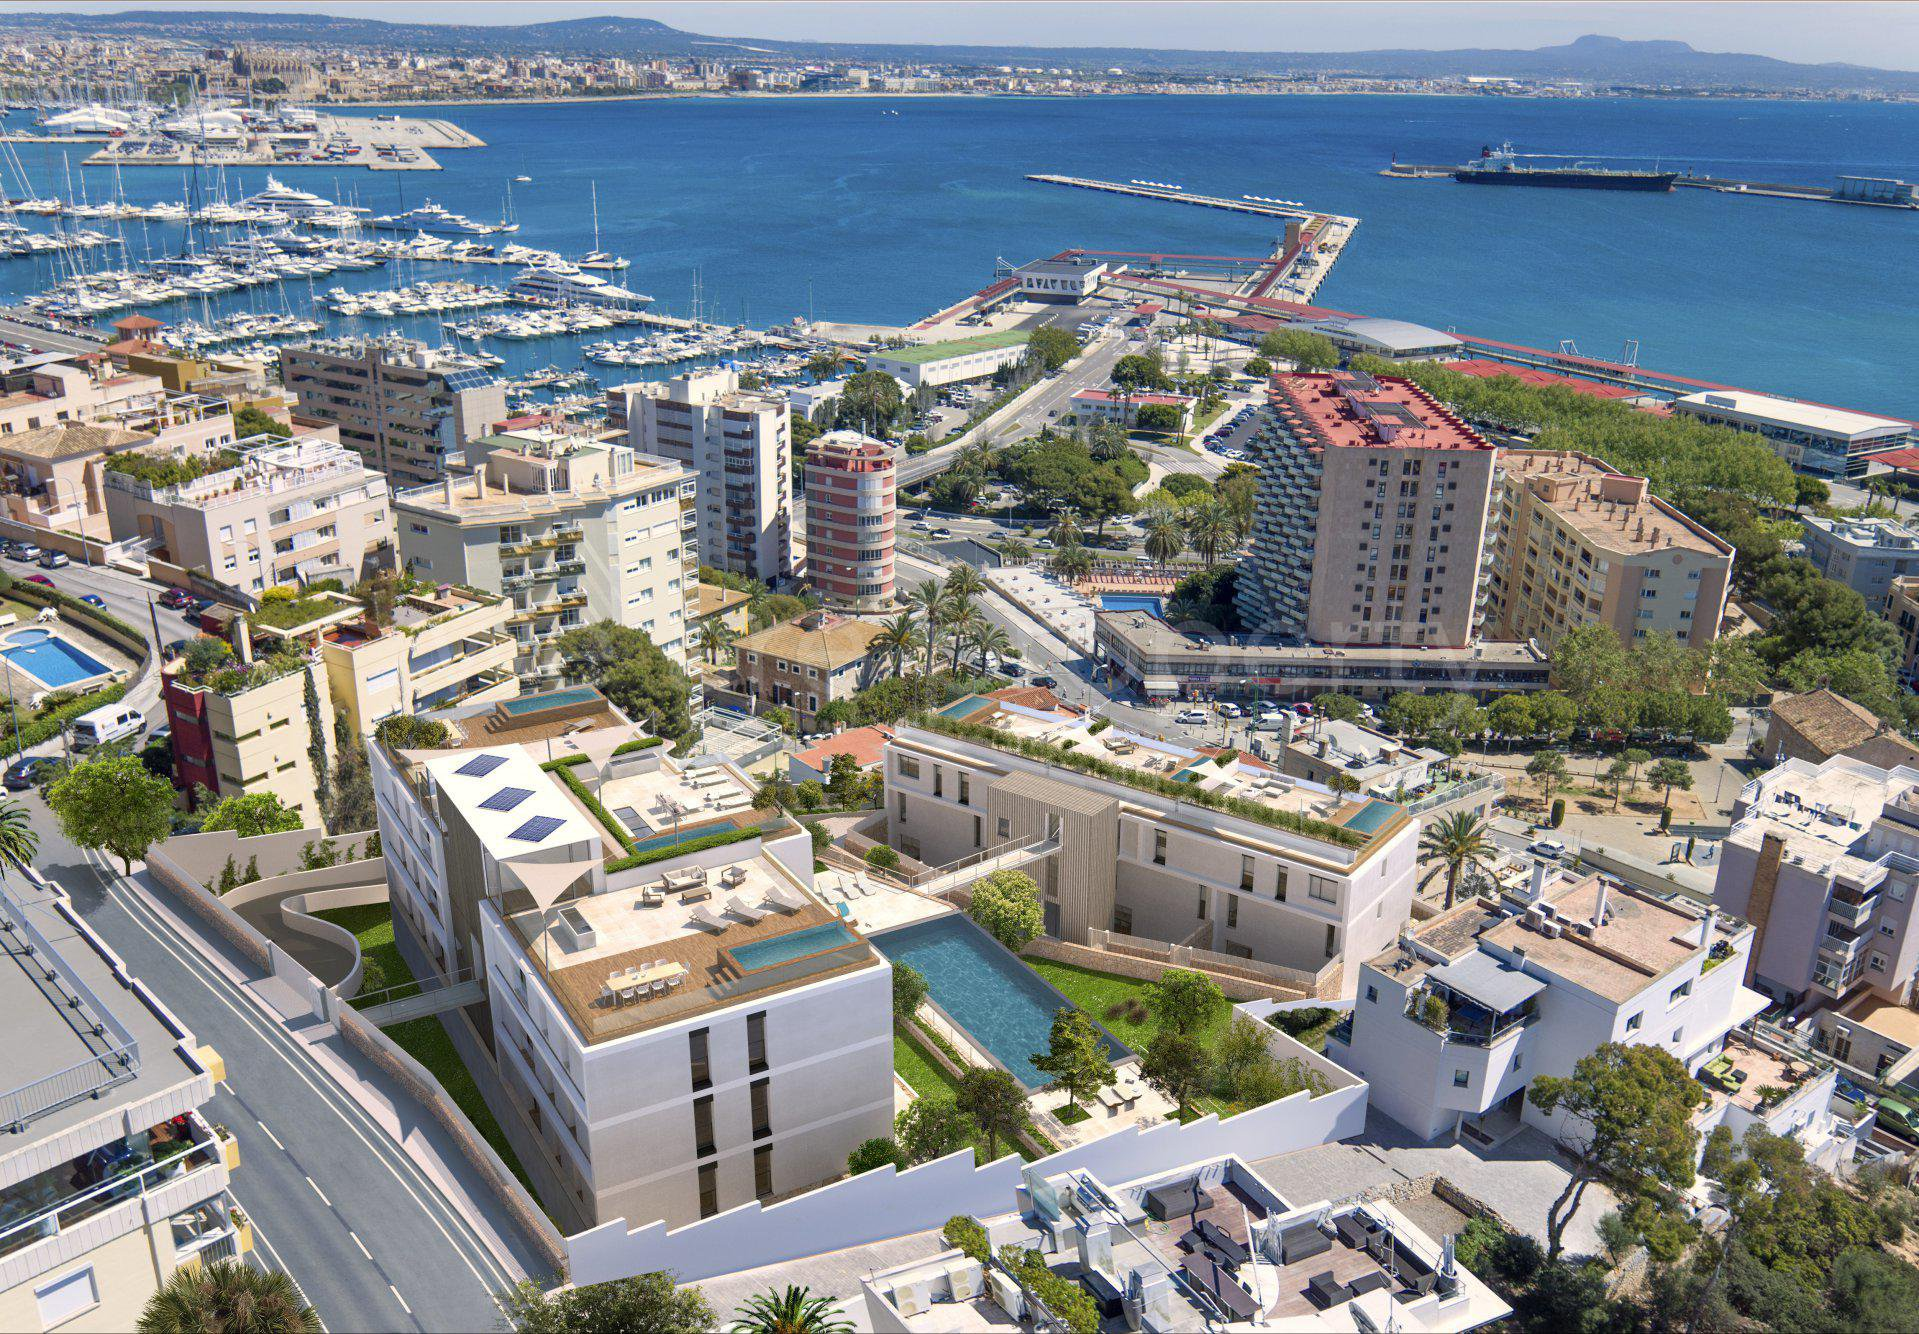 New project in Palma